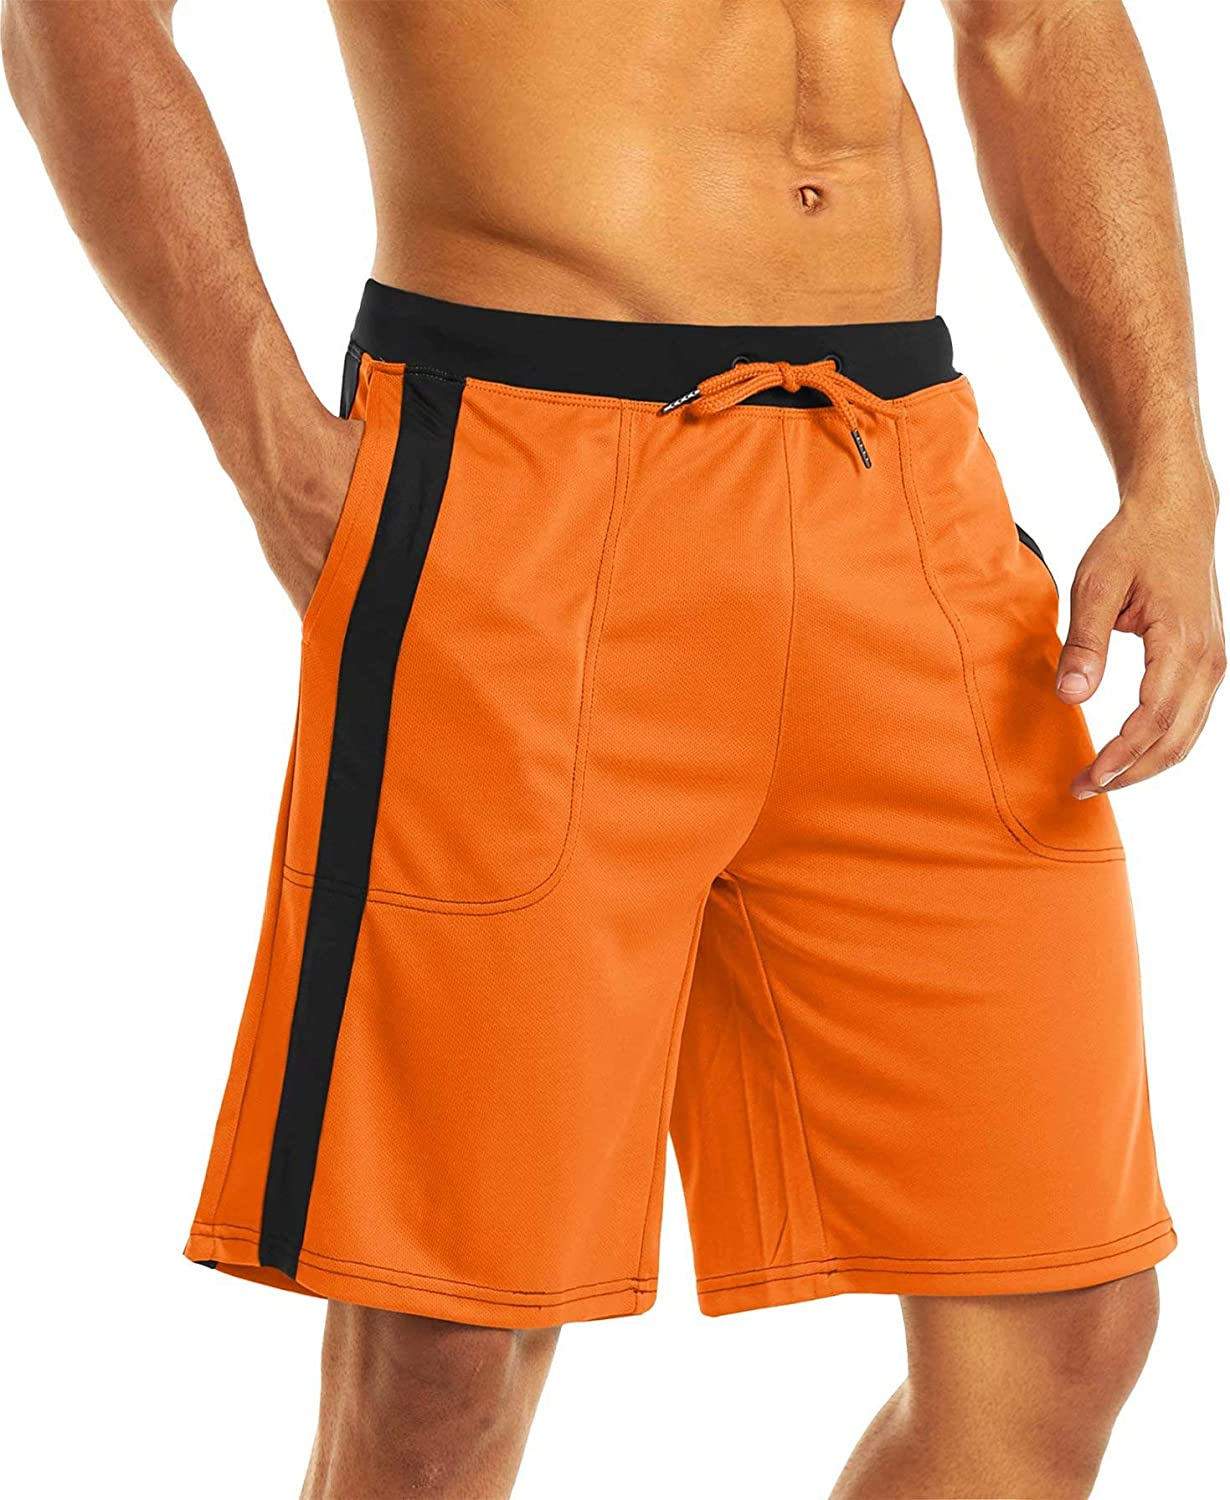 MAGCOMSEN specialty shop Men's Genuine Free Shipping Running Shorts Mesh with Athletic Linied